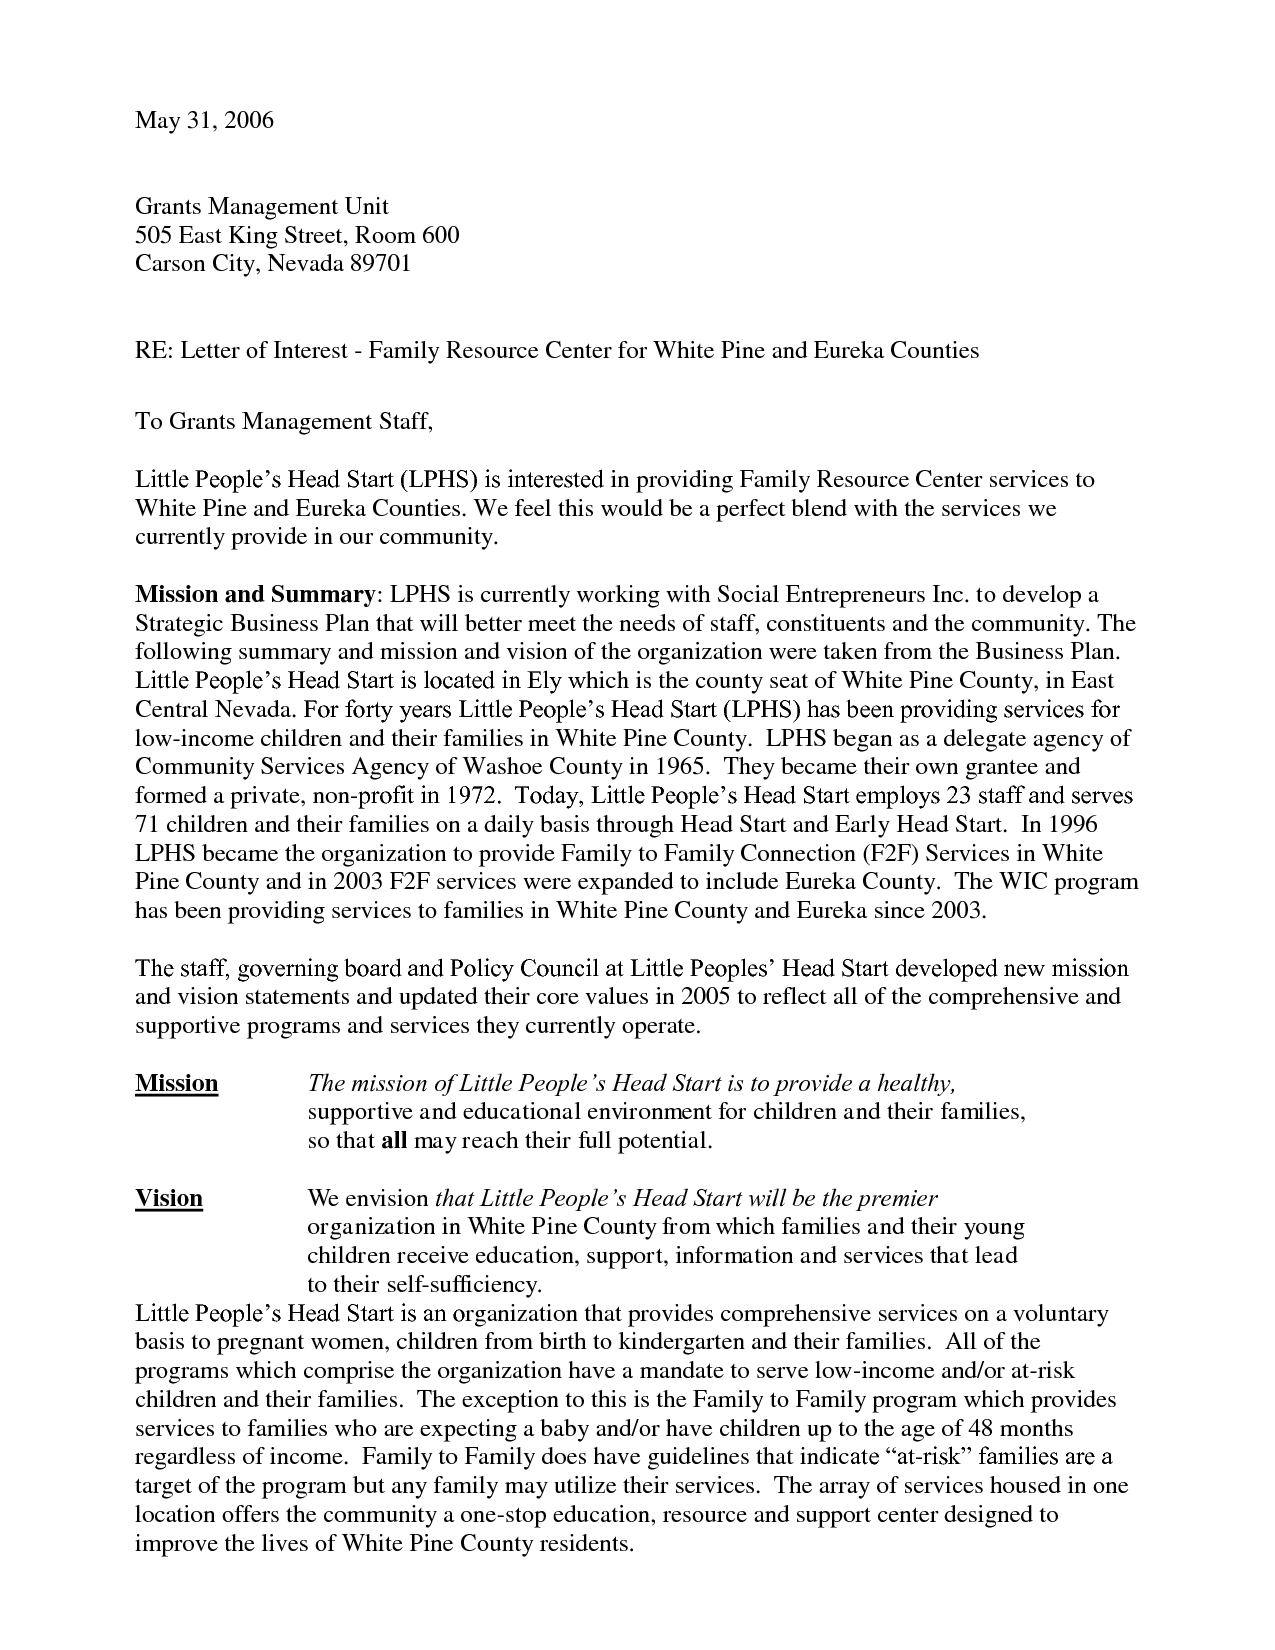 Letter Of Intent Job Anishinabek Ontario Fisheries Resource Centre A